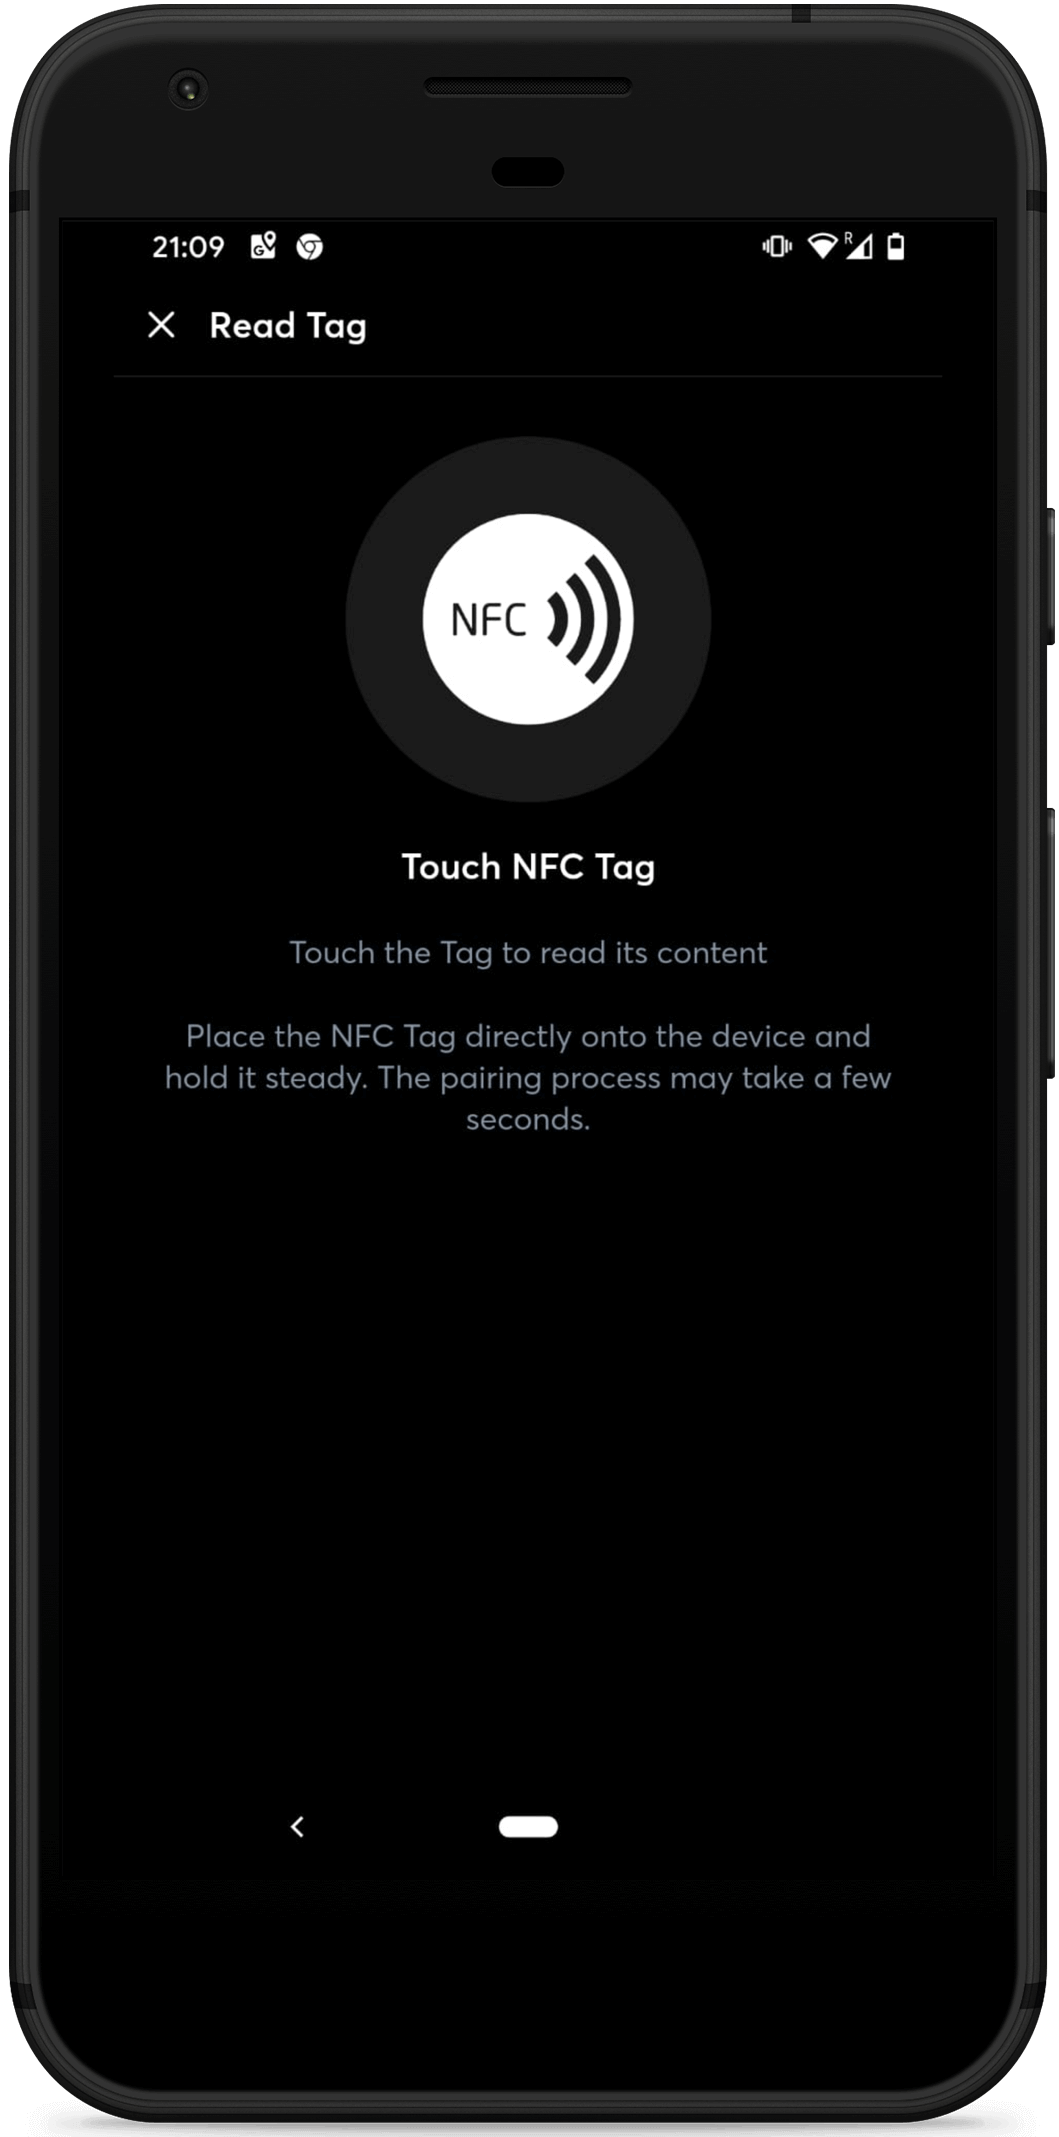 NFC in the smart home app